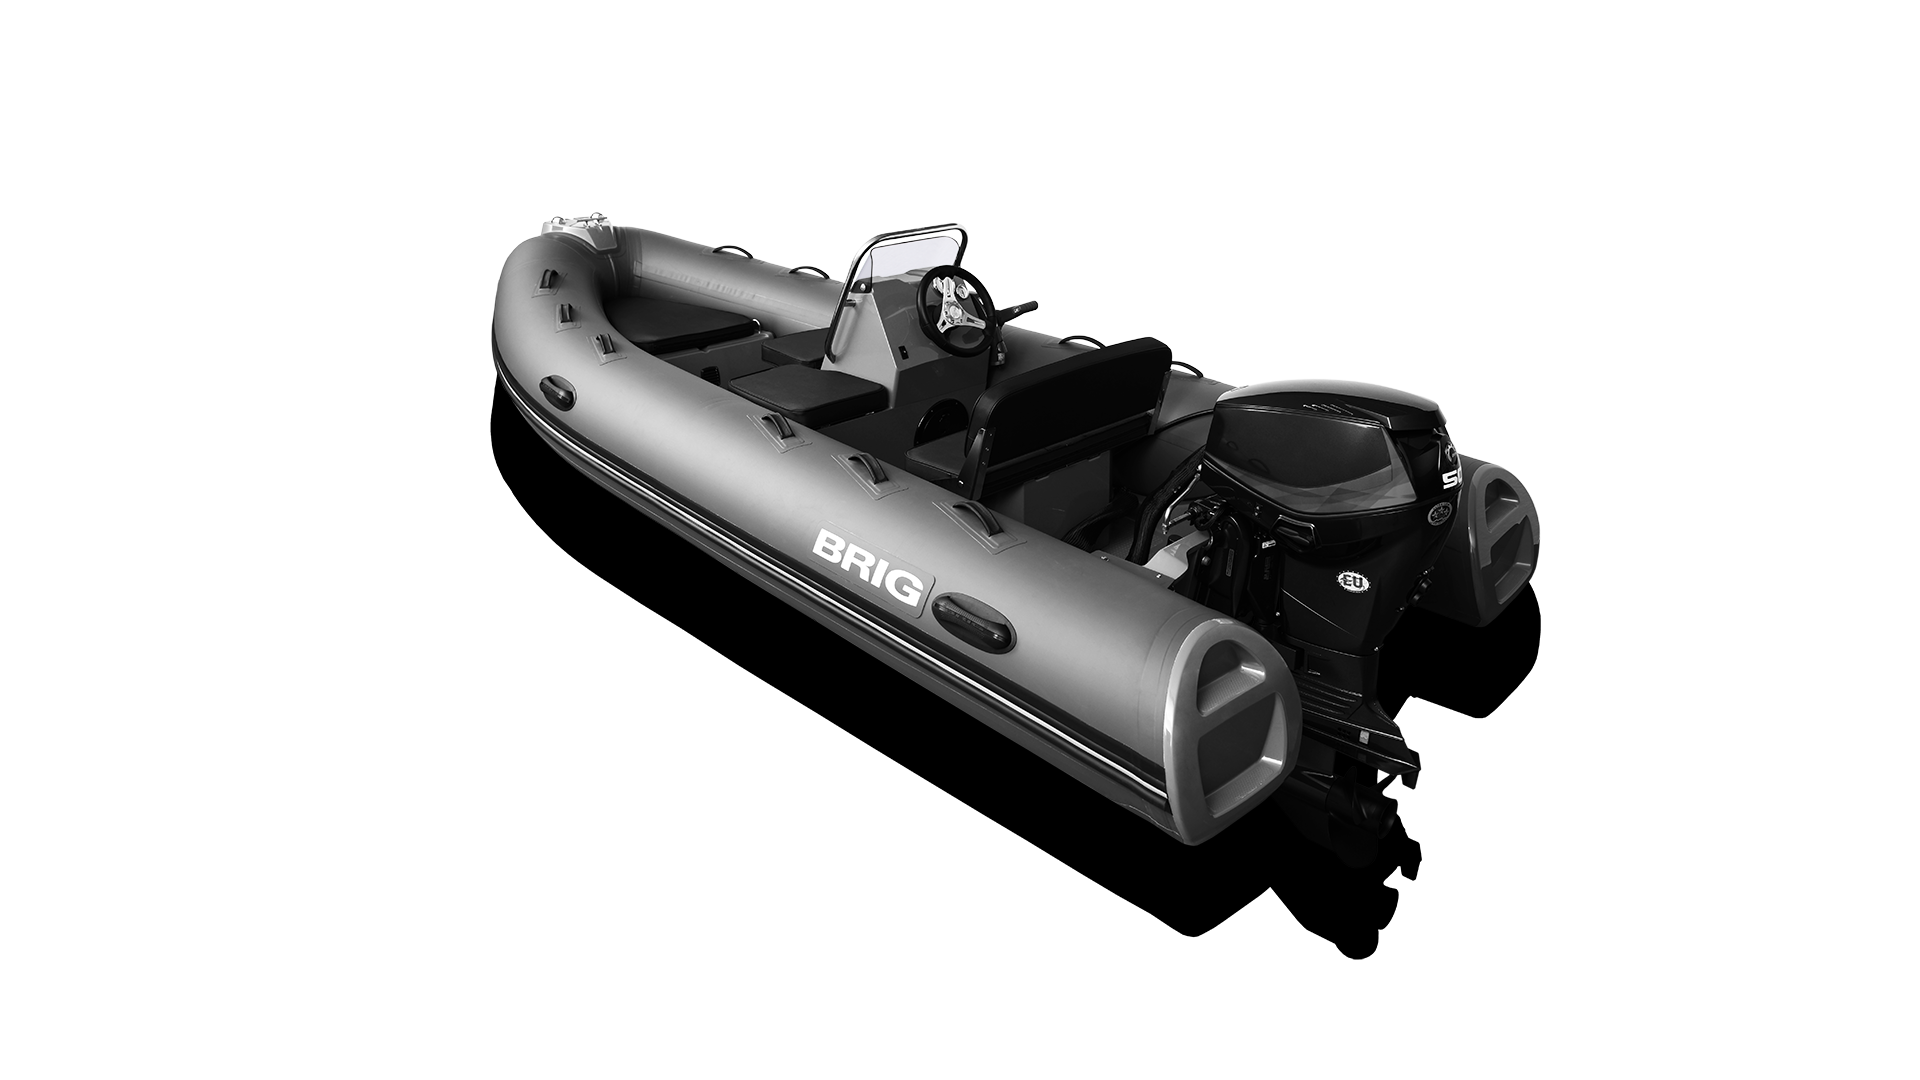 Falcon 420 Rigid Inflatable Boat